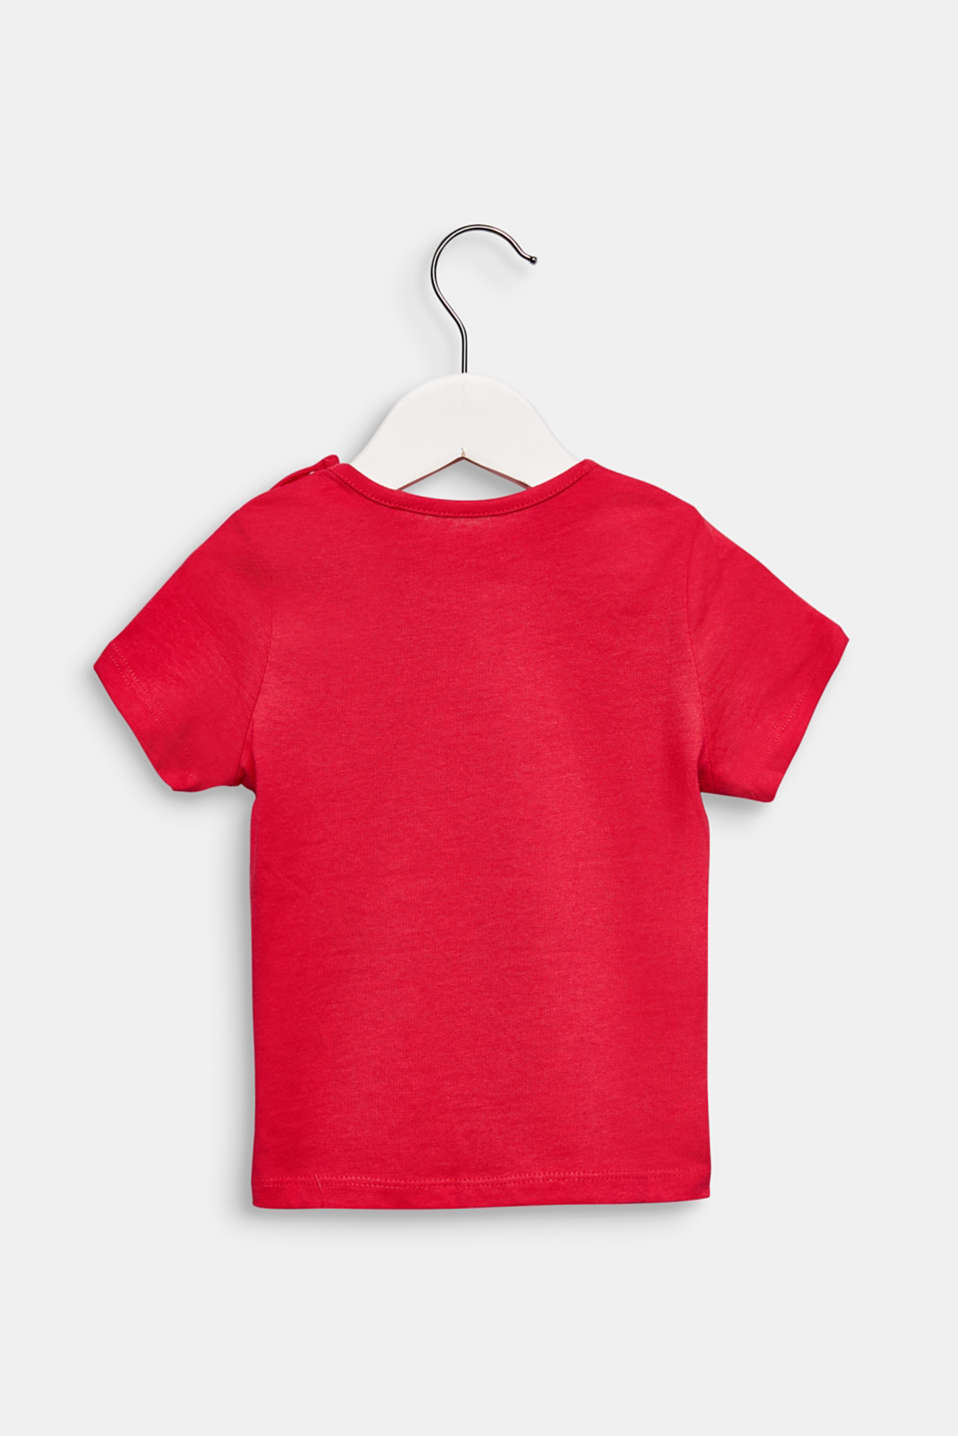 T-shirt with ladybird print, 100% cotton, LCRASPBERRY, detail image number 1